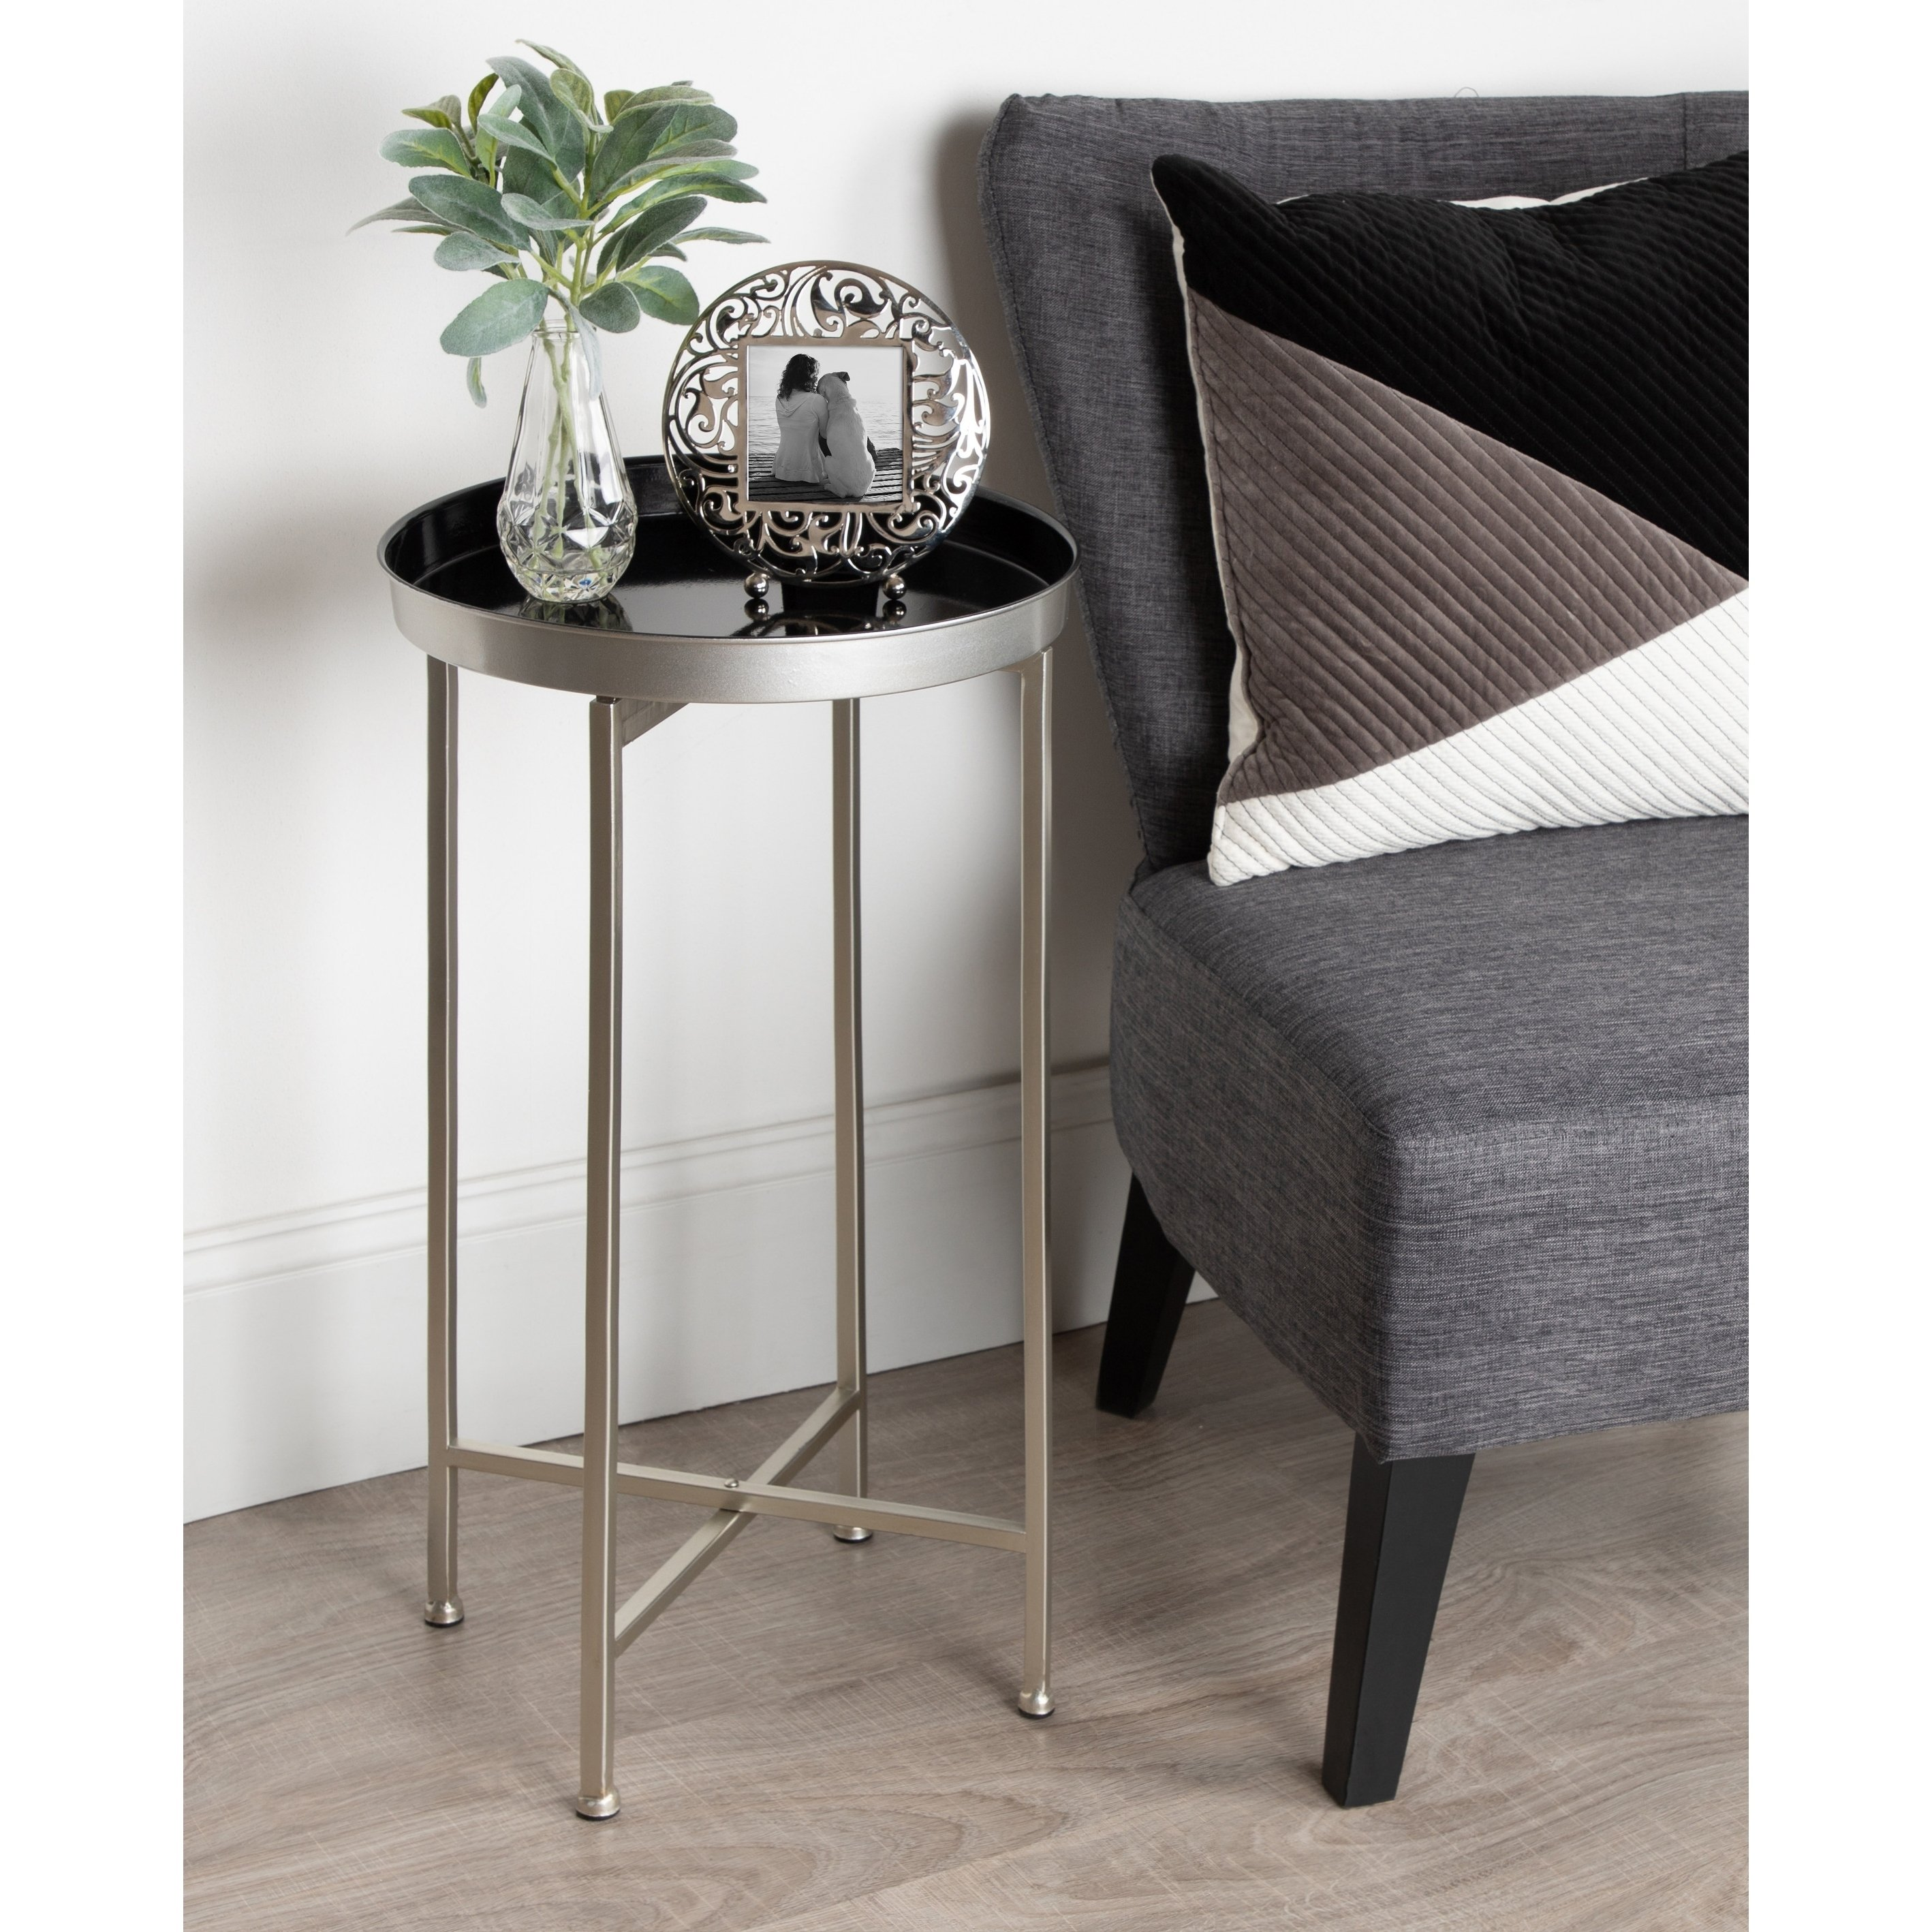 kate and laurel celia round metal foldable tray accent table target white lamp nate berkus glass agate pier dishes wooden christmas tree storage box ikea bedroom cabinets outdoor